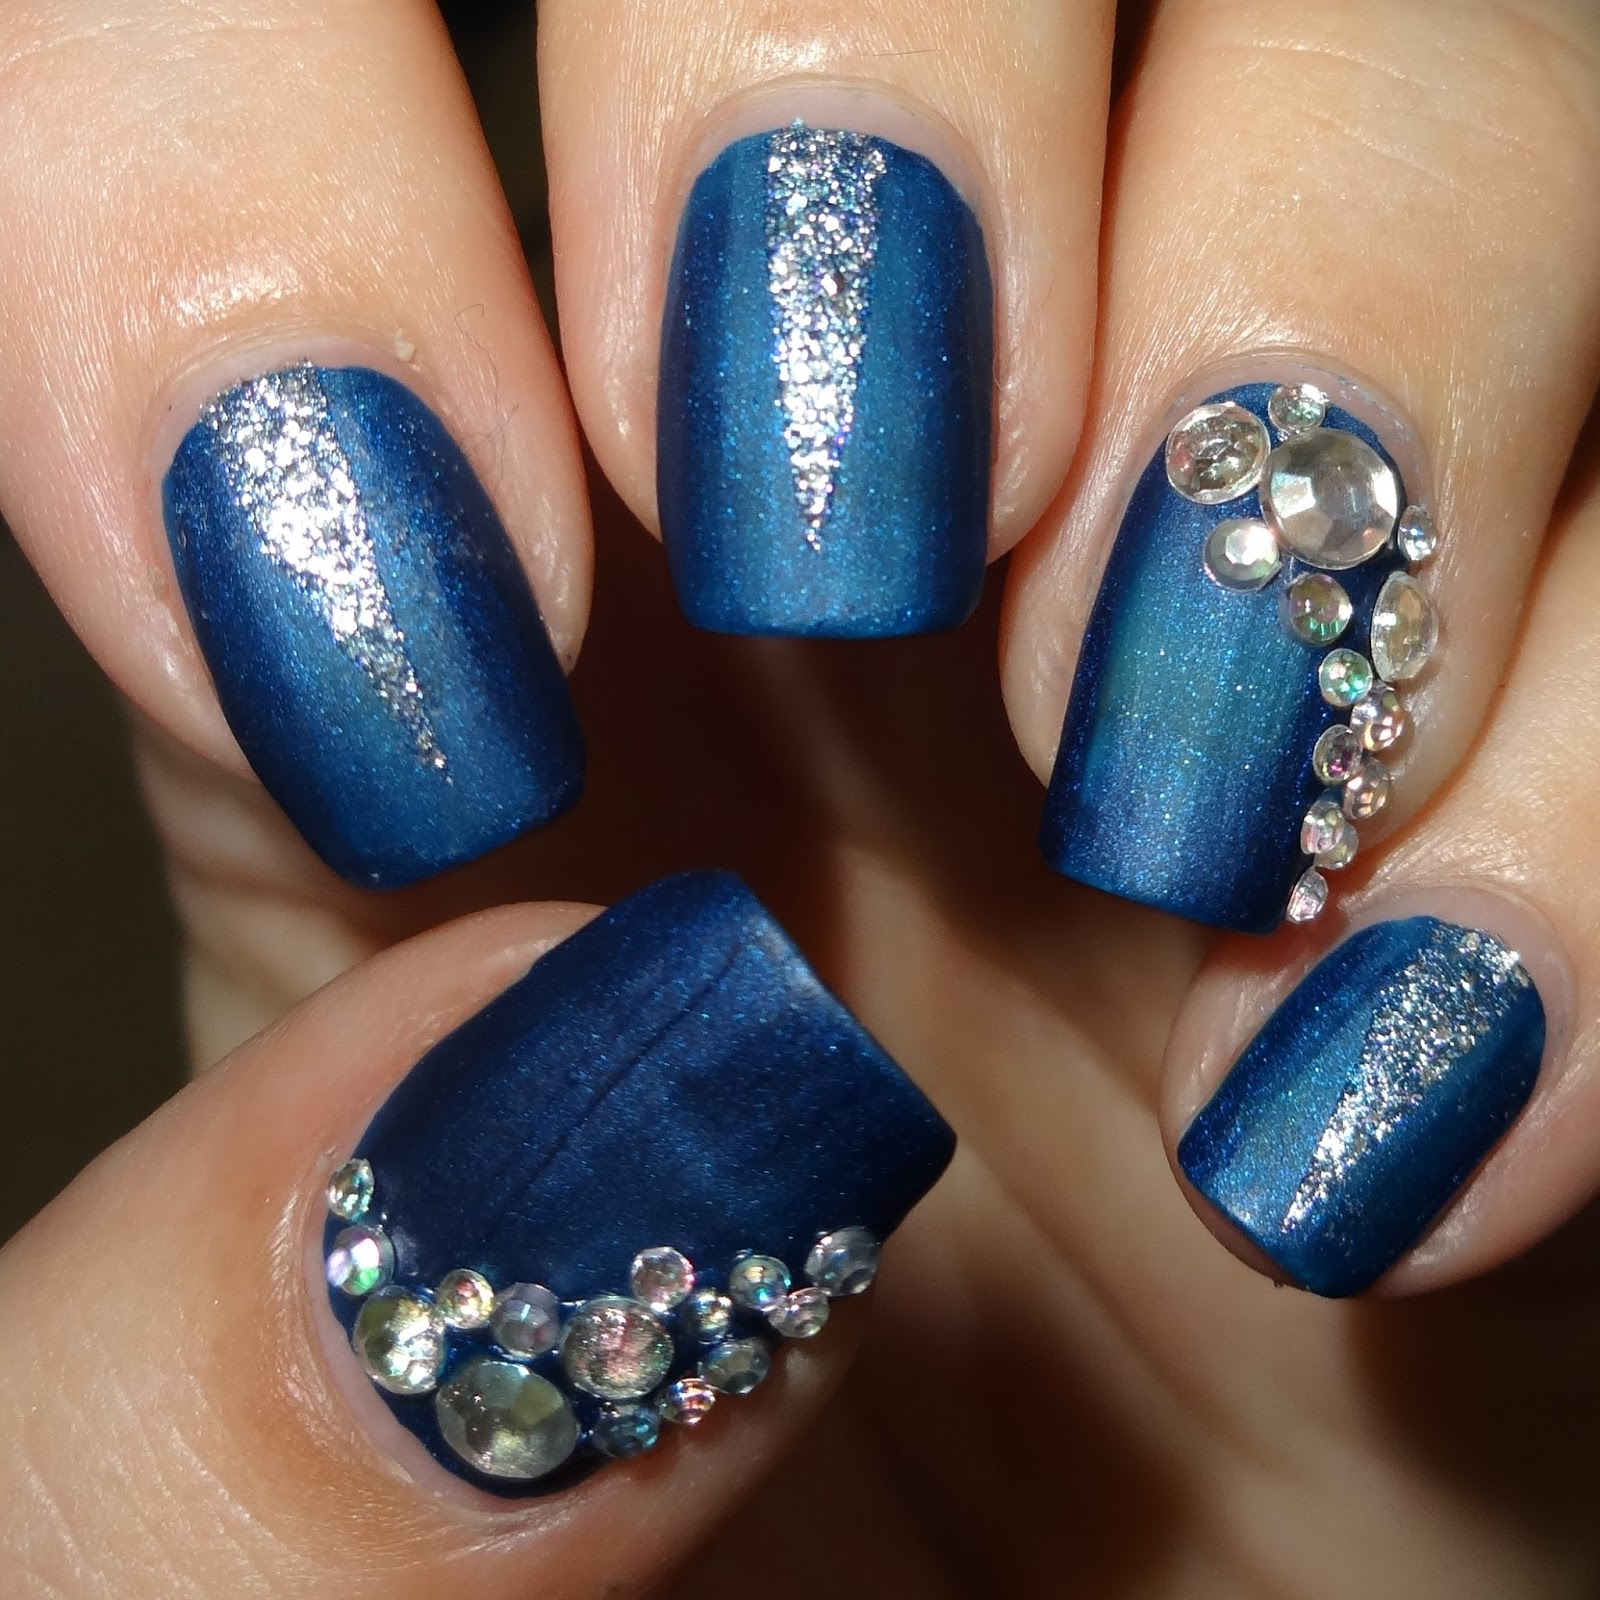 Wendy's Delights: Blue & Silver Mani Using 3D Nail Art